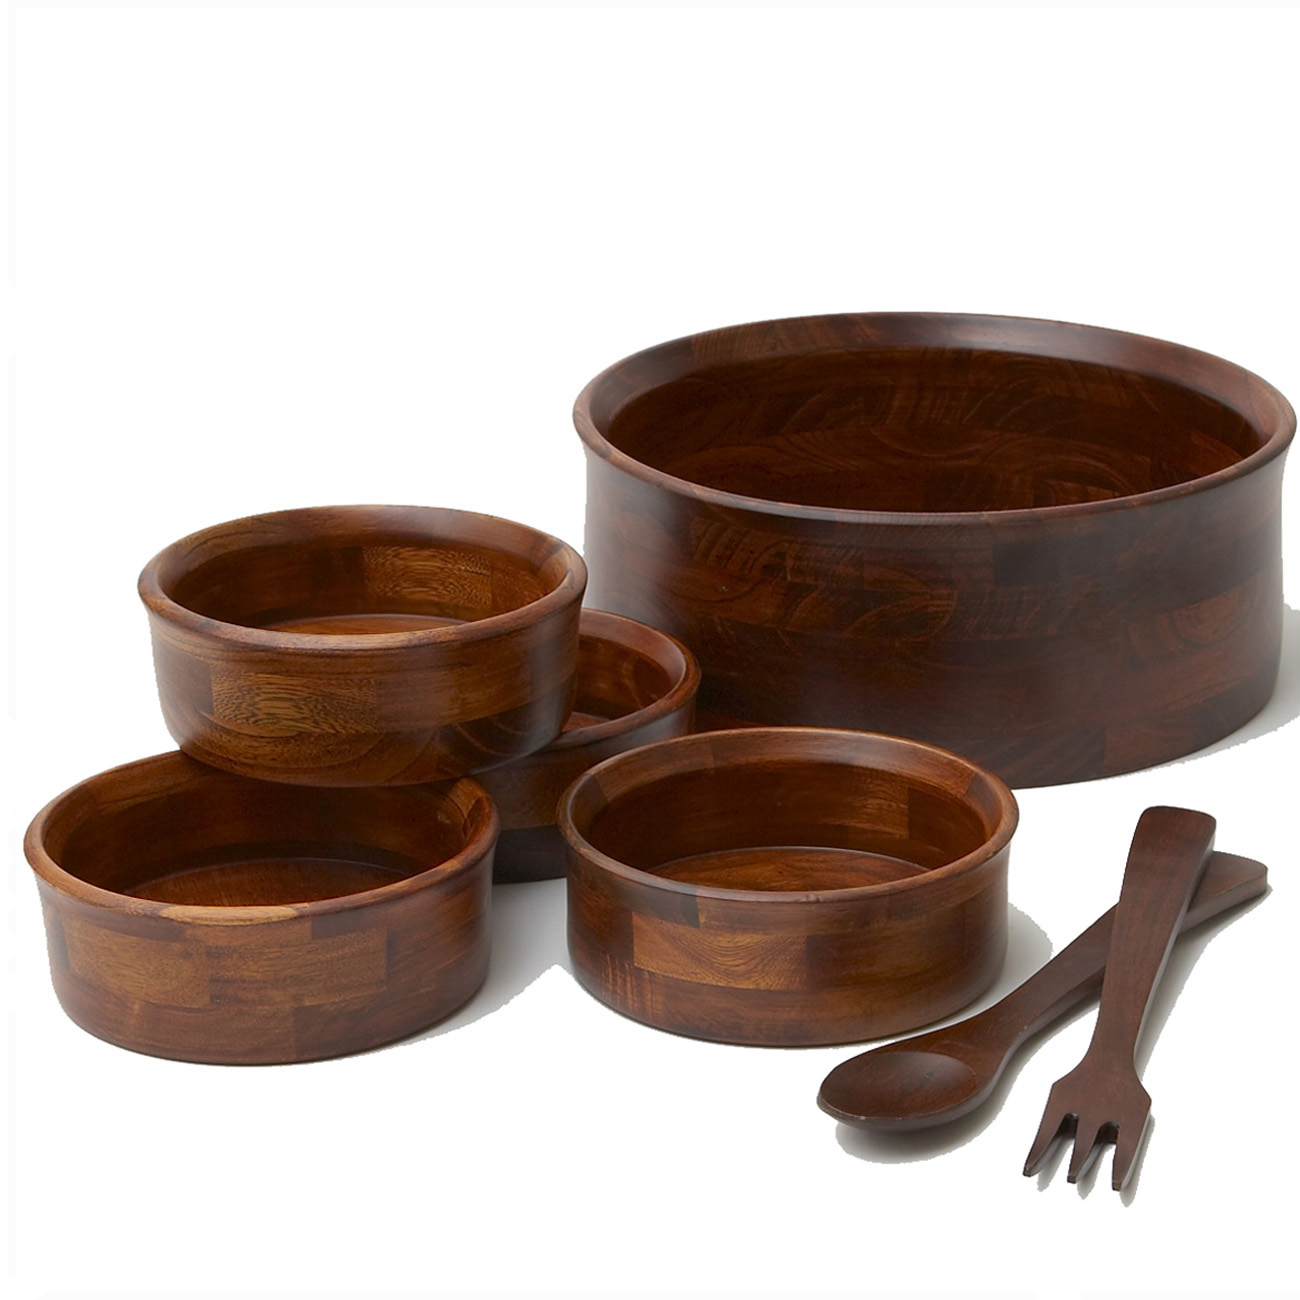 7 Piece Wood Salad Bowl Set by Woodard & Charles by